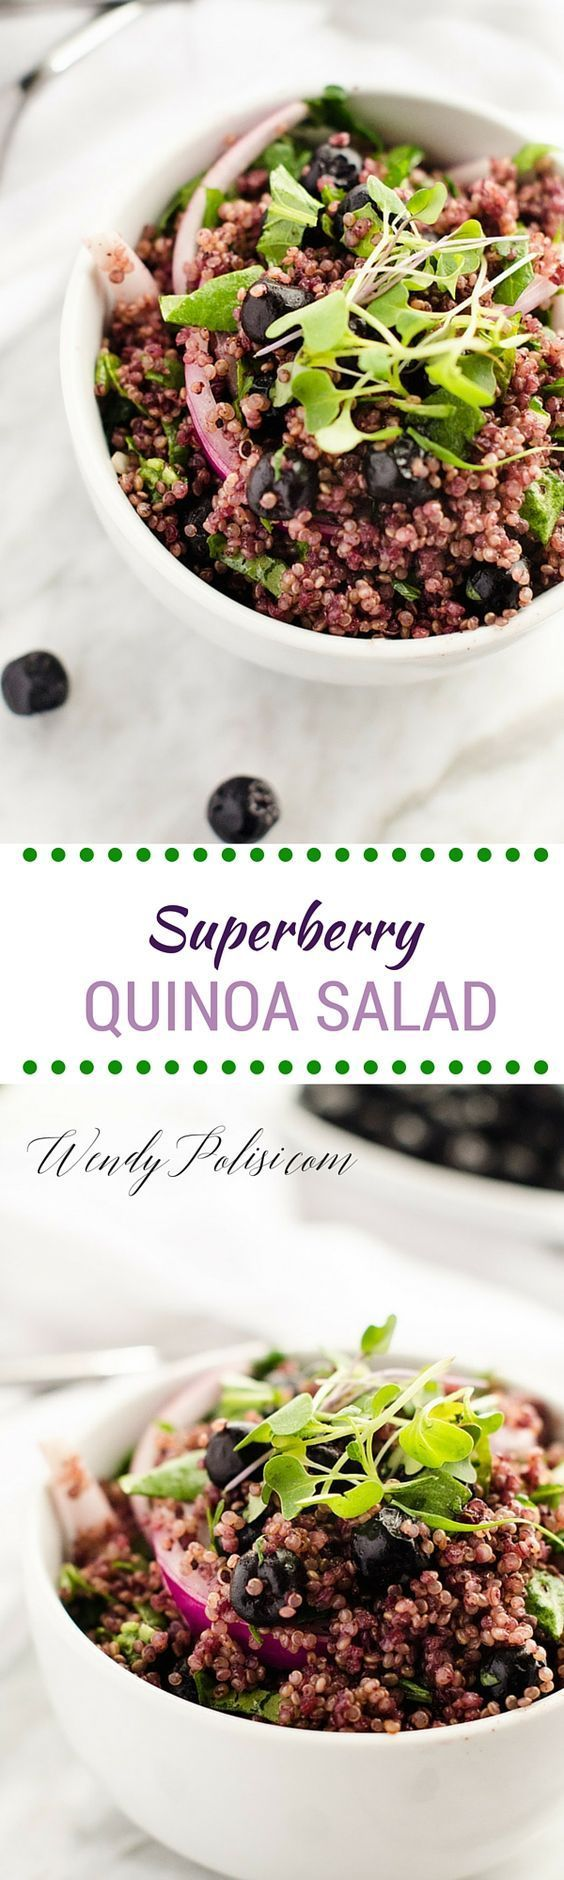 This Superberry Quinoa Salad is the perfect way to fuel your day.  With the nutritional powerhouses of aroniaberries and quinoa, this superfood salad is truly sensational.  #EatPurple #ad